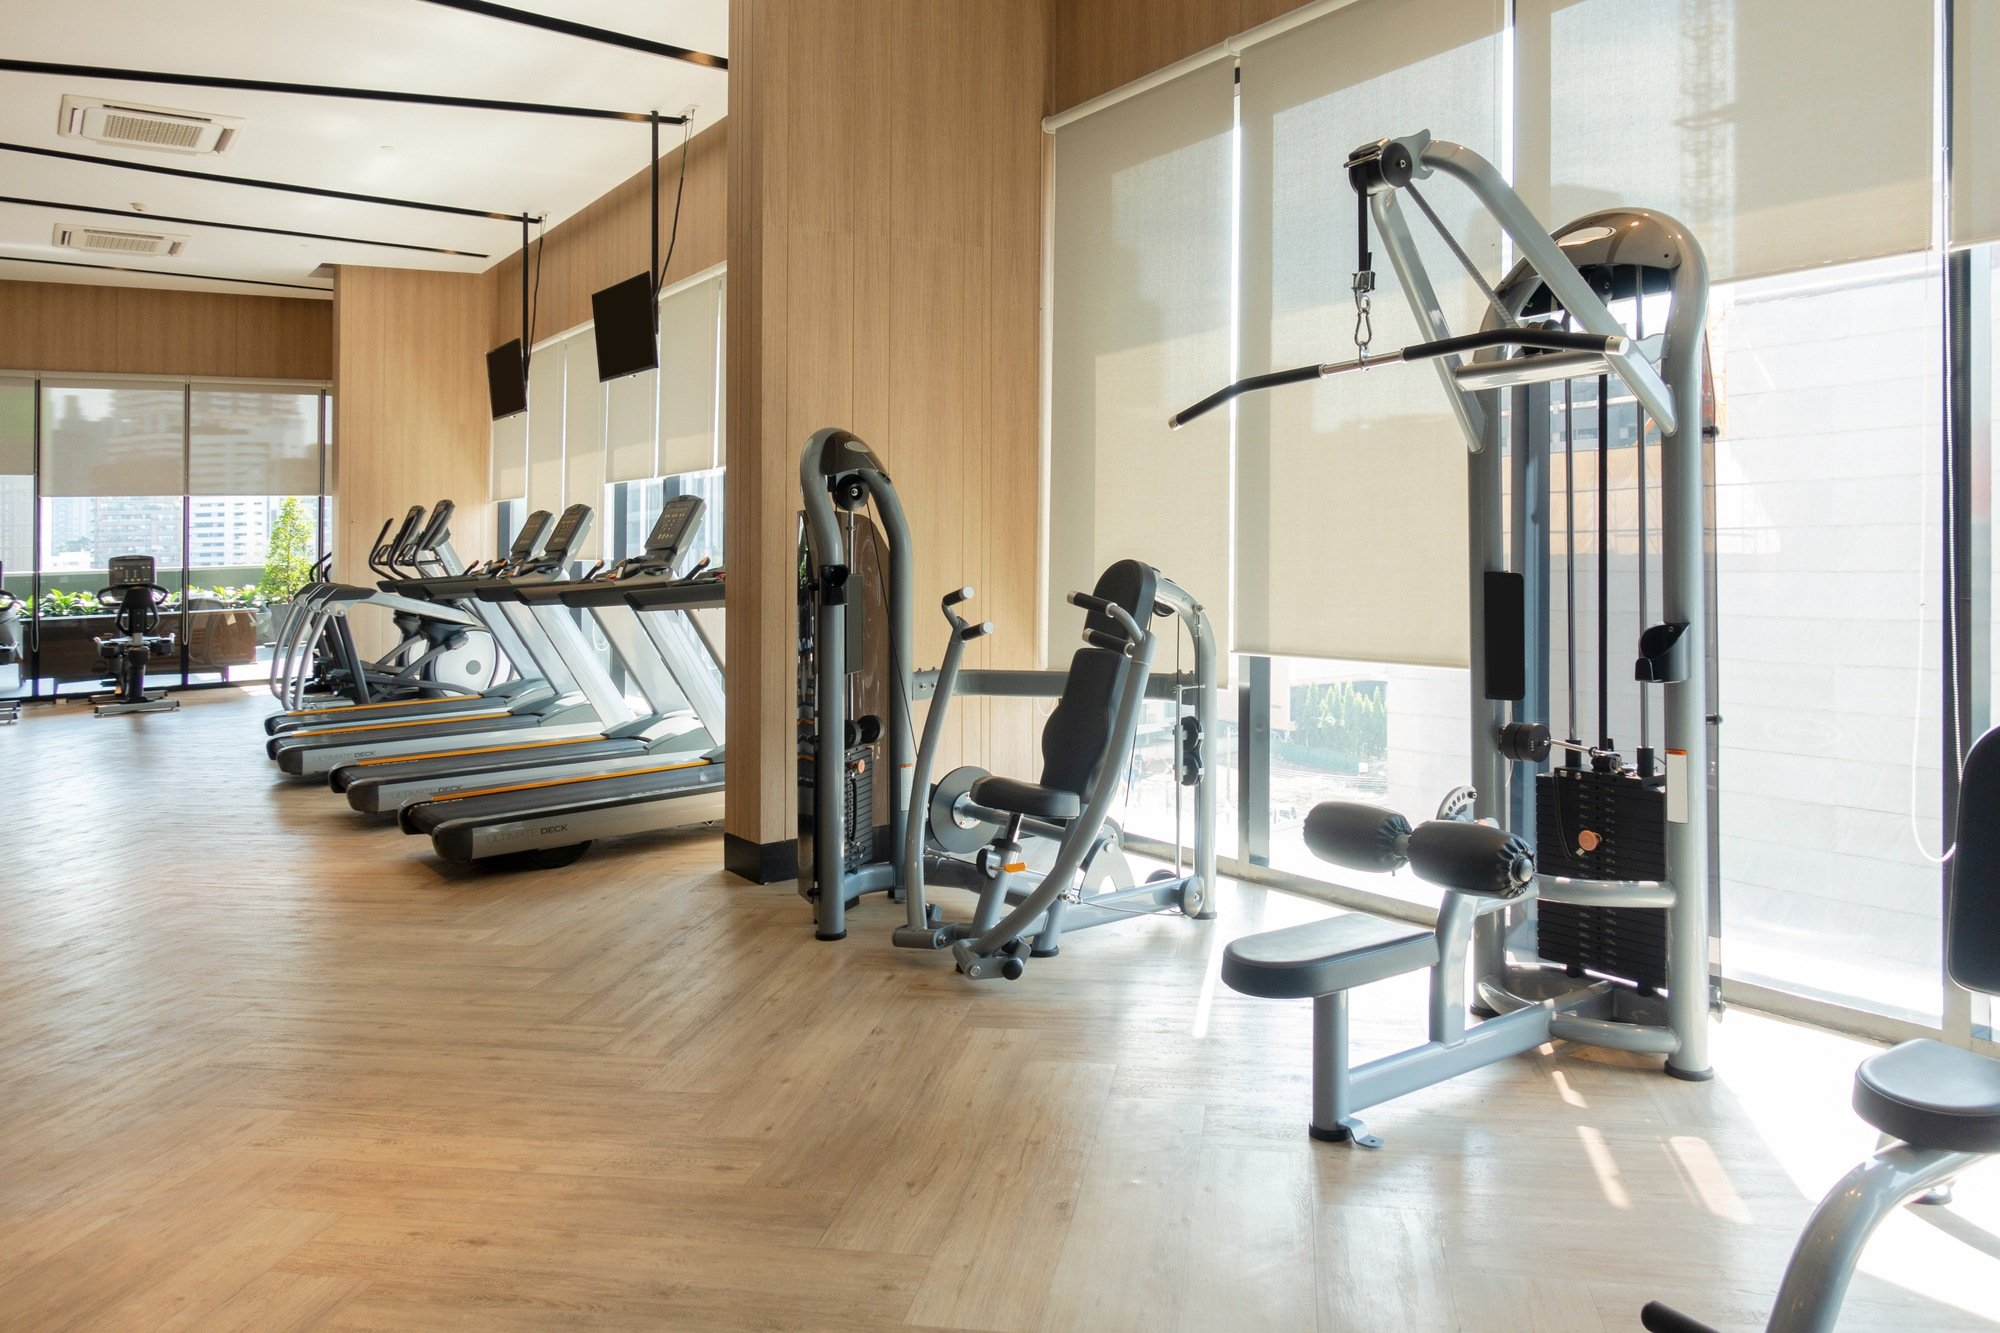 Business travel tip: make use of the hotel gym during corporate travels